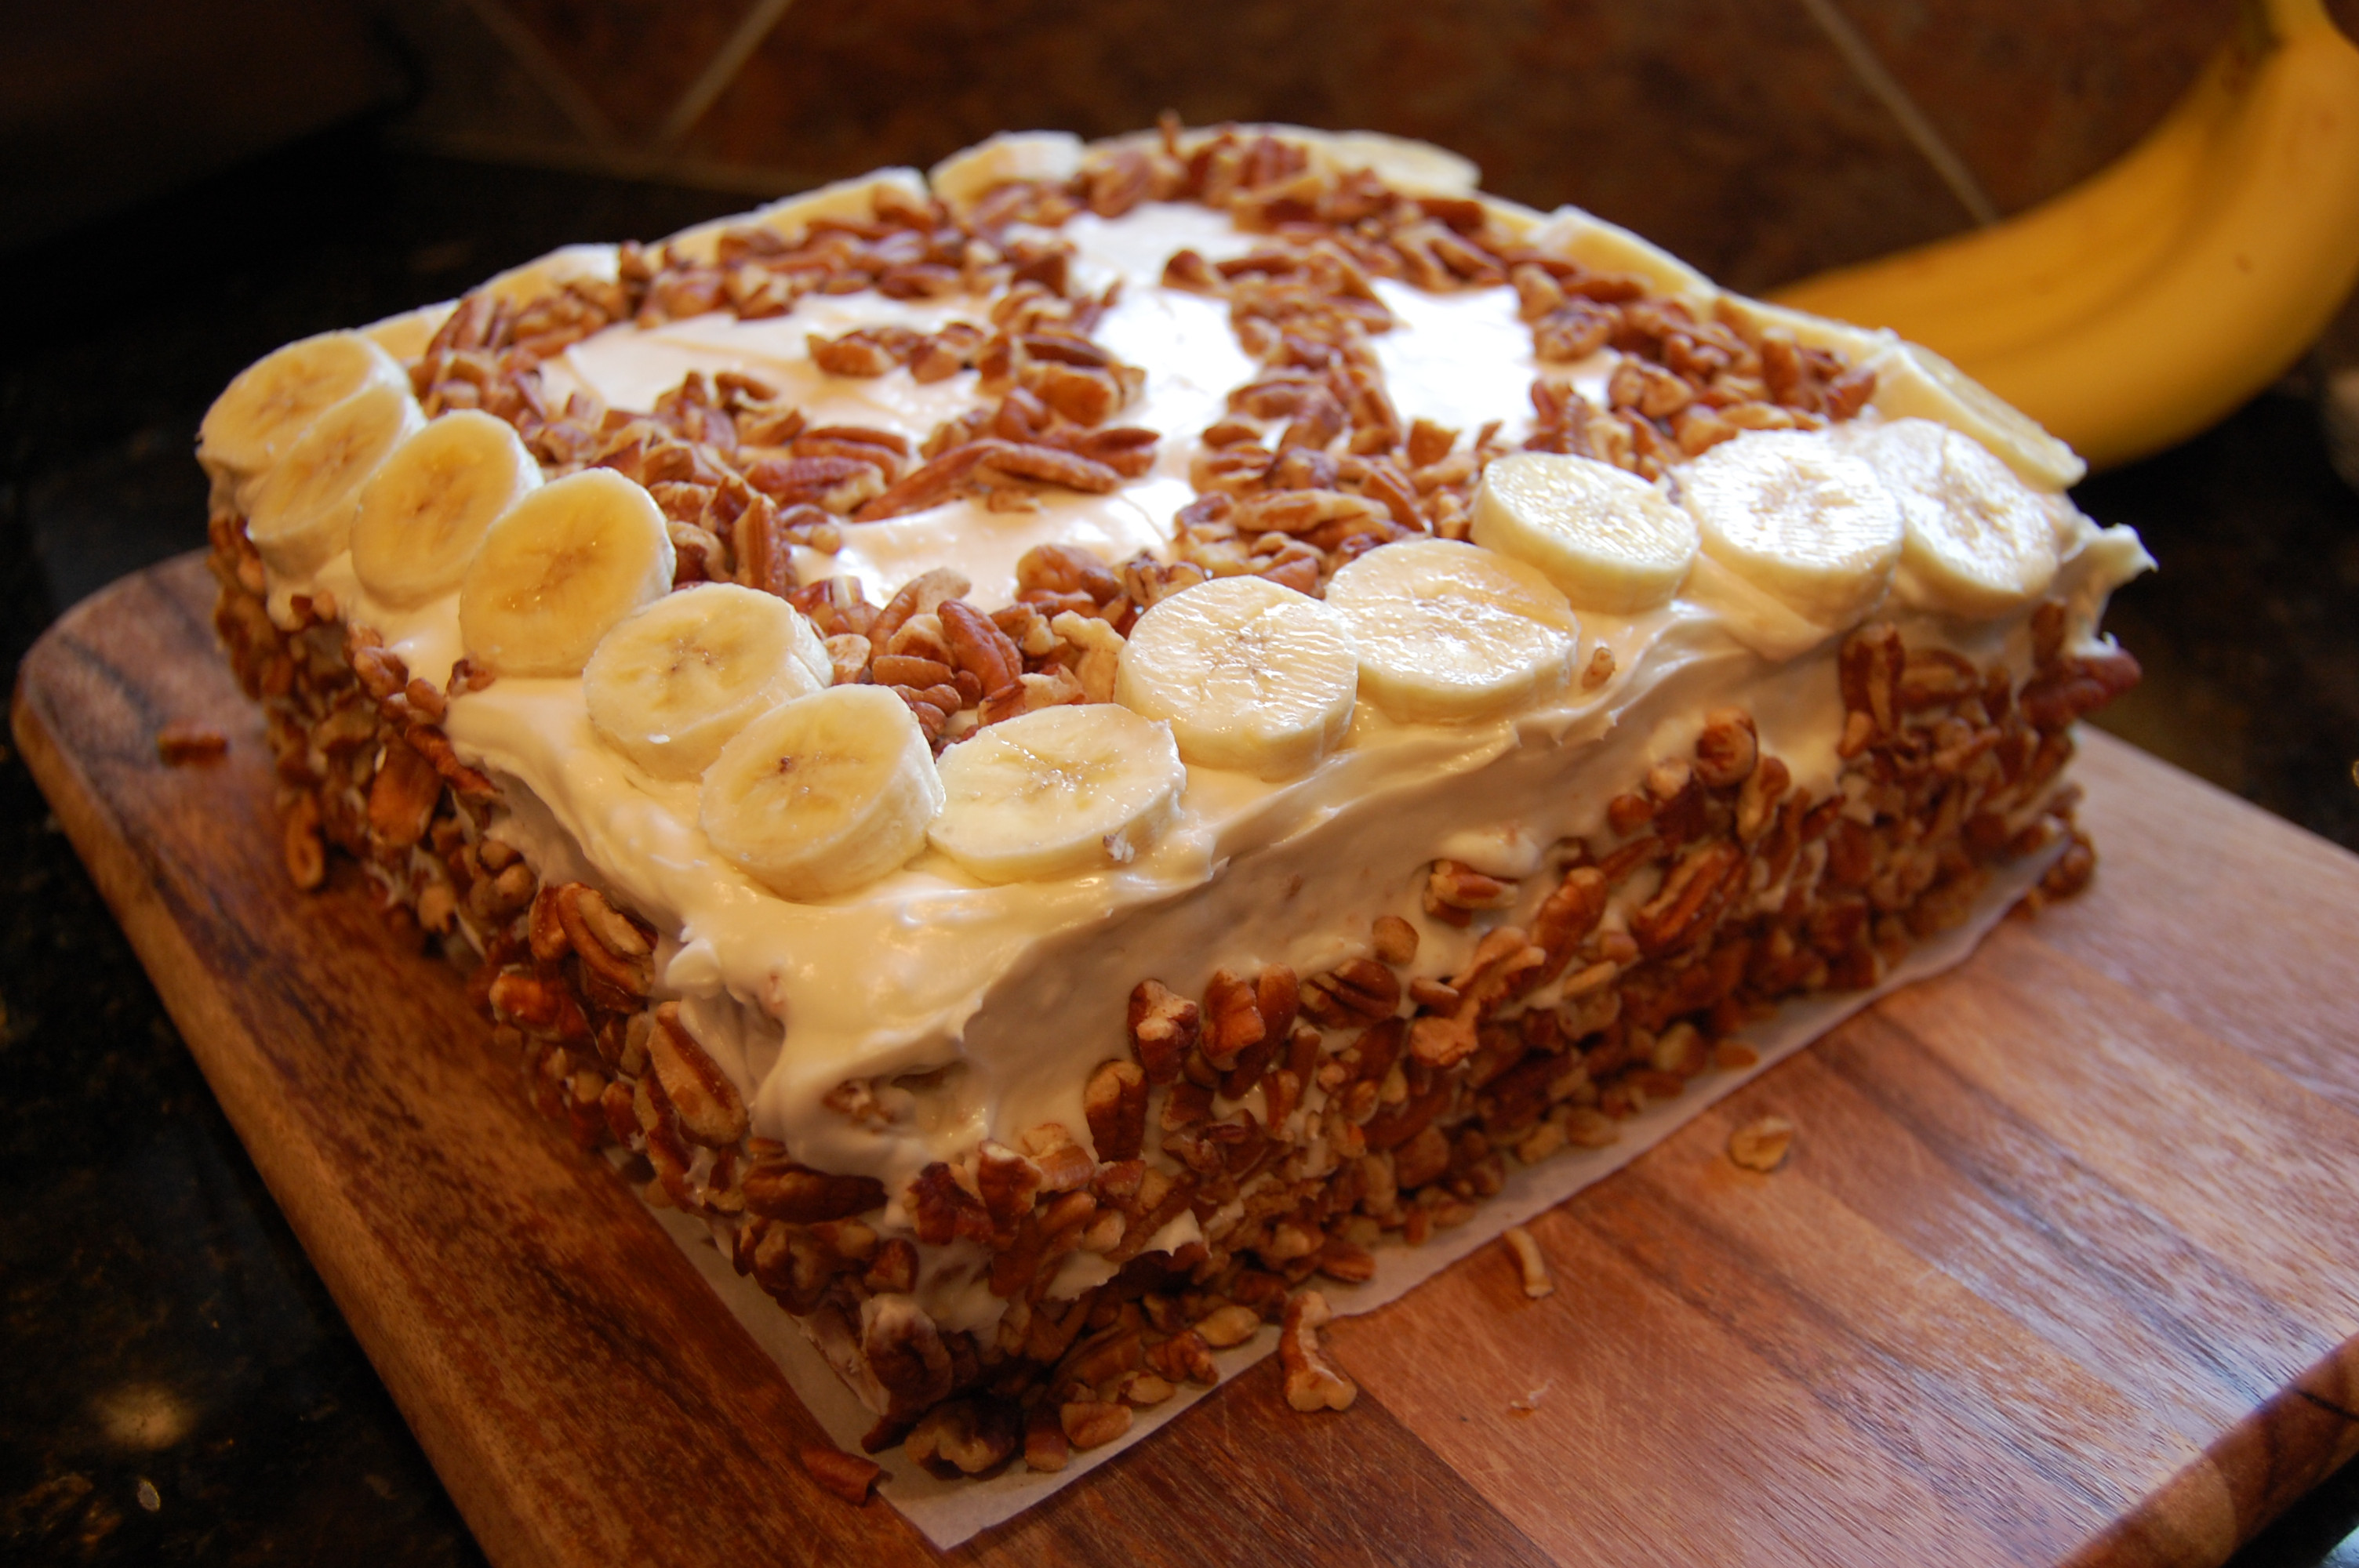 Best ideas about Banana Birthday Cake . Save or Pin Banana Birthday Cake with Cream Cheese Frosting and Pecan Now.